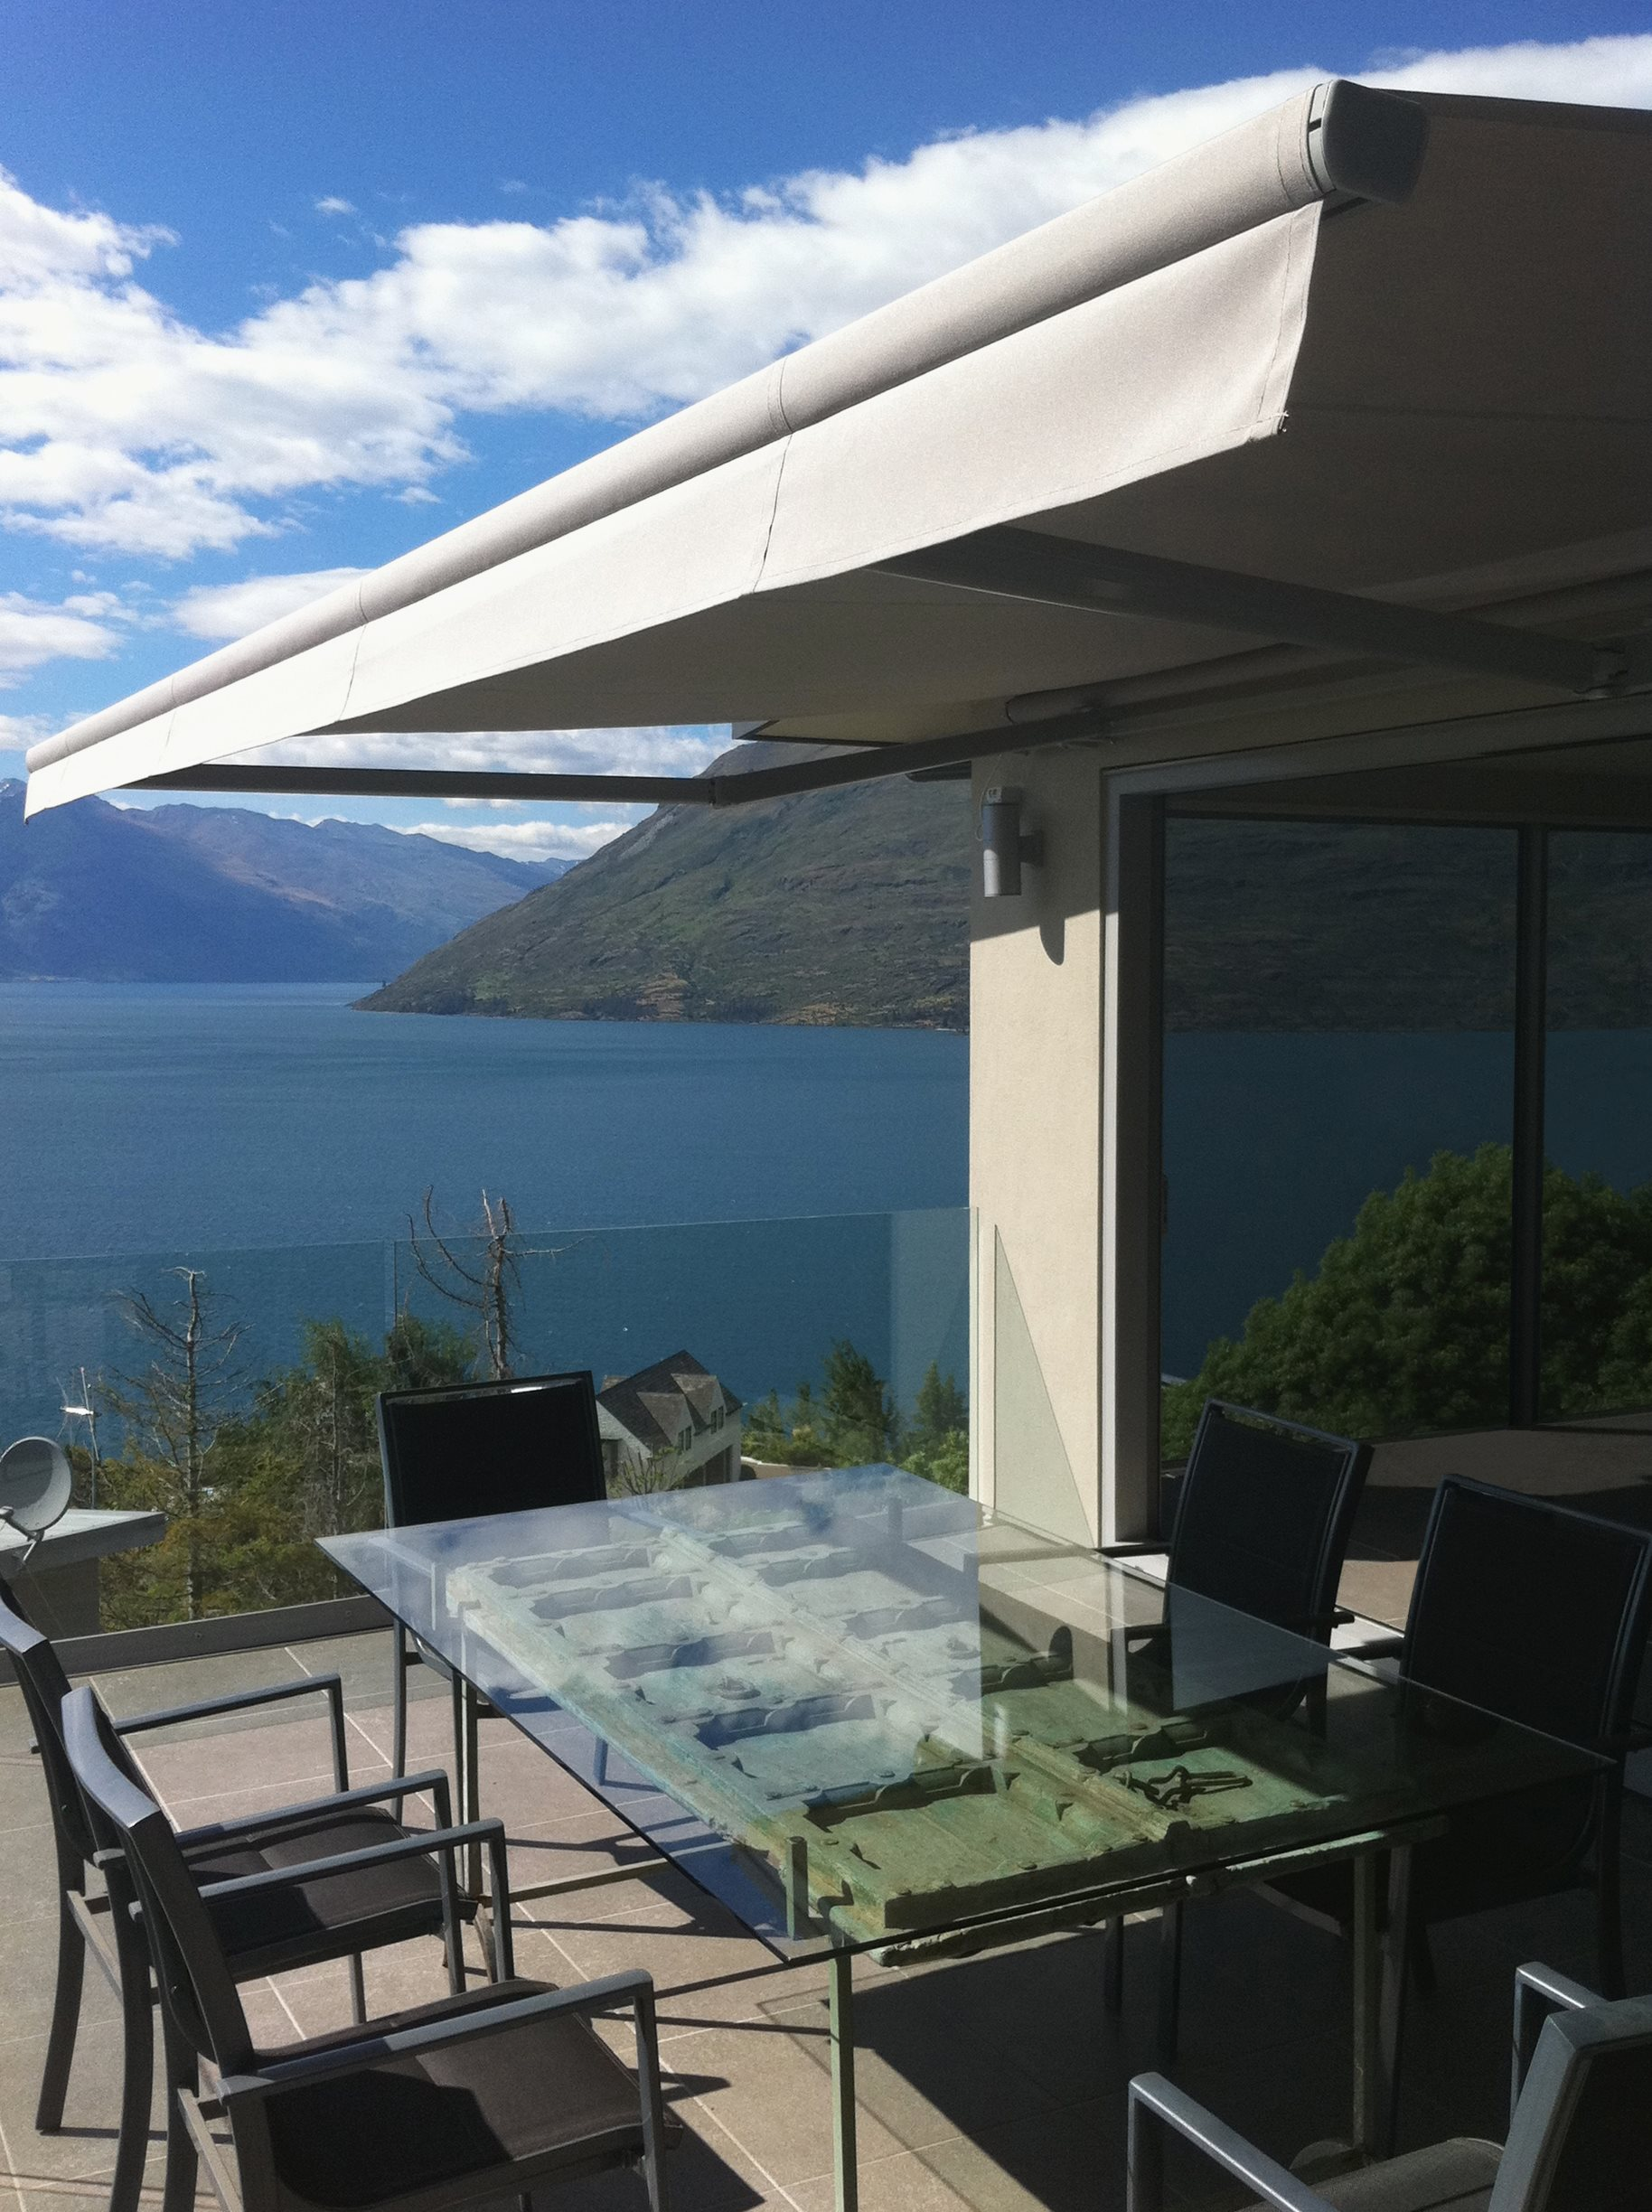 Euro awning open over balcony dining area overlooking Queenstown